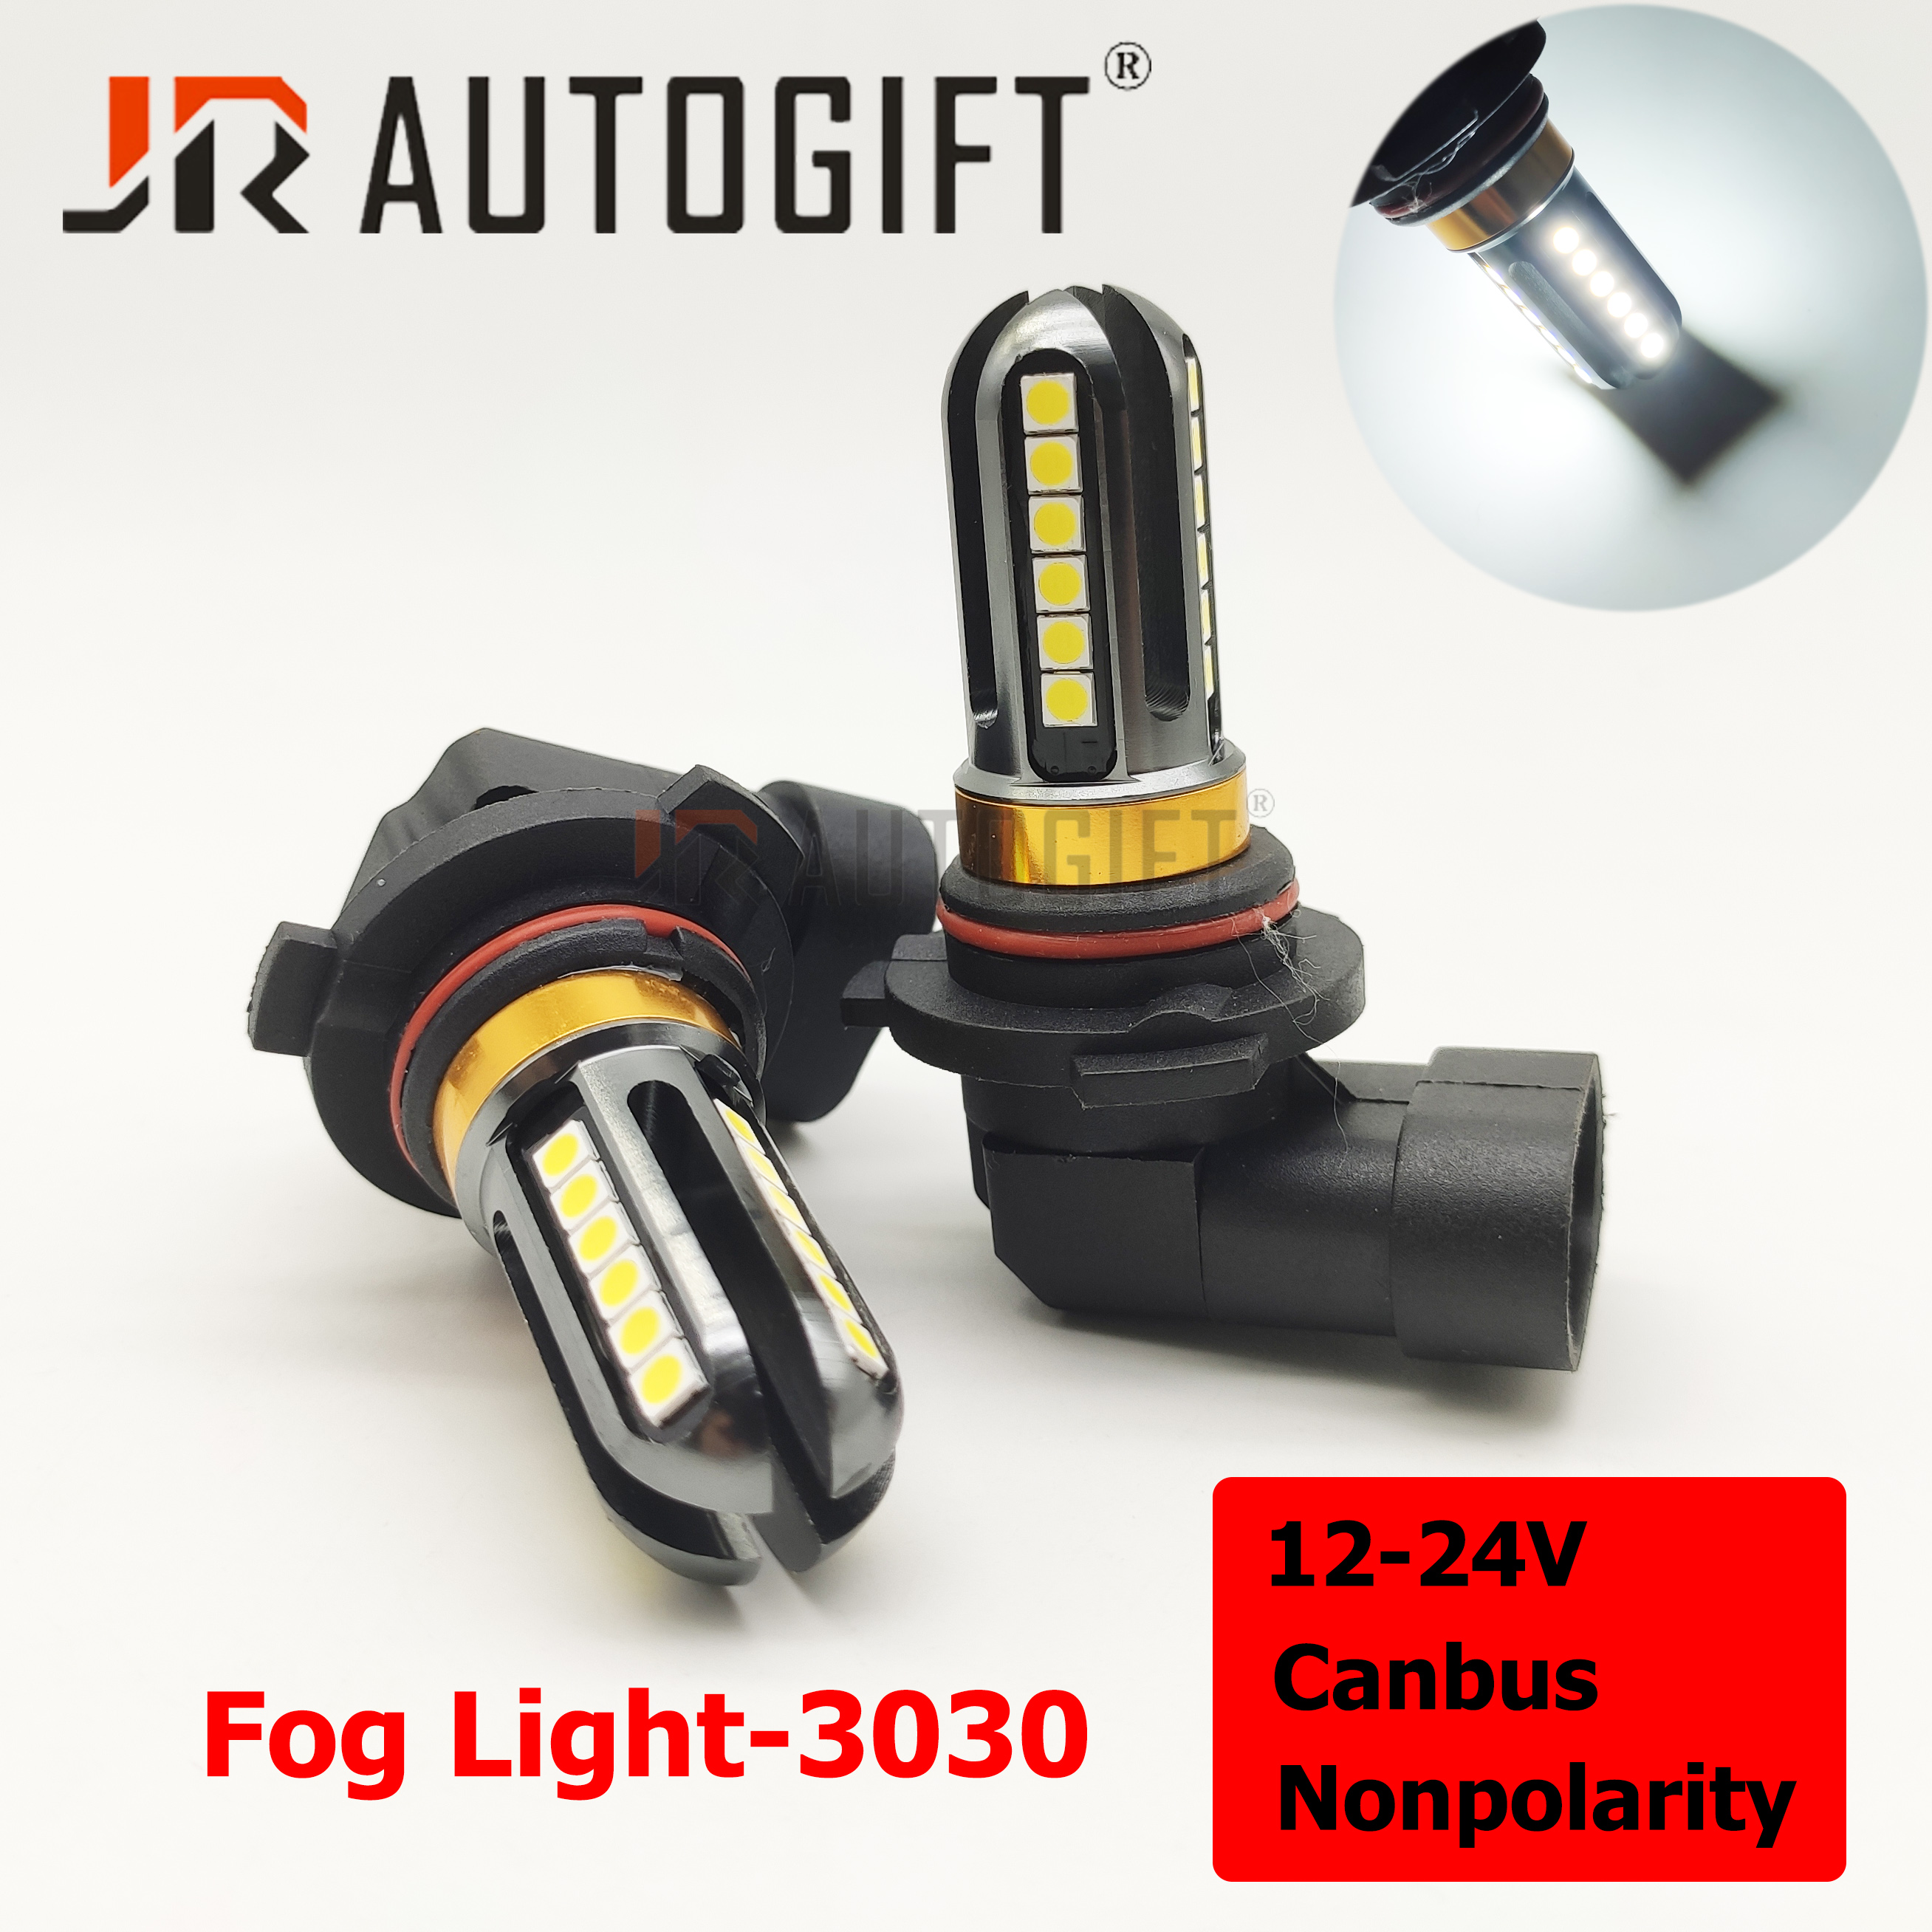 2x PSX24W H16 P13W H4 H11 H8 H7 9005 9006 HB4 HB3 H1 H3 3030 Chips 24LED 12-24V Canbus Fog Lights DRL Car Fog lamps Auto Bulbs